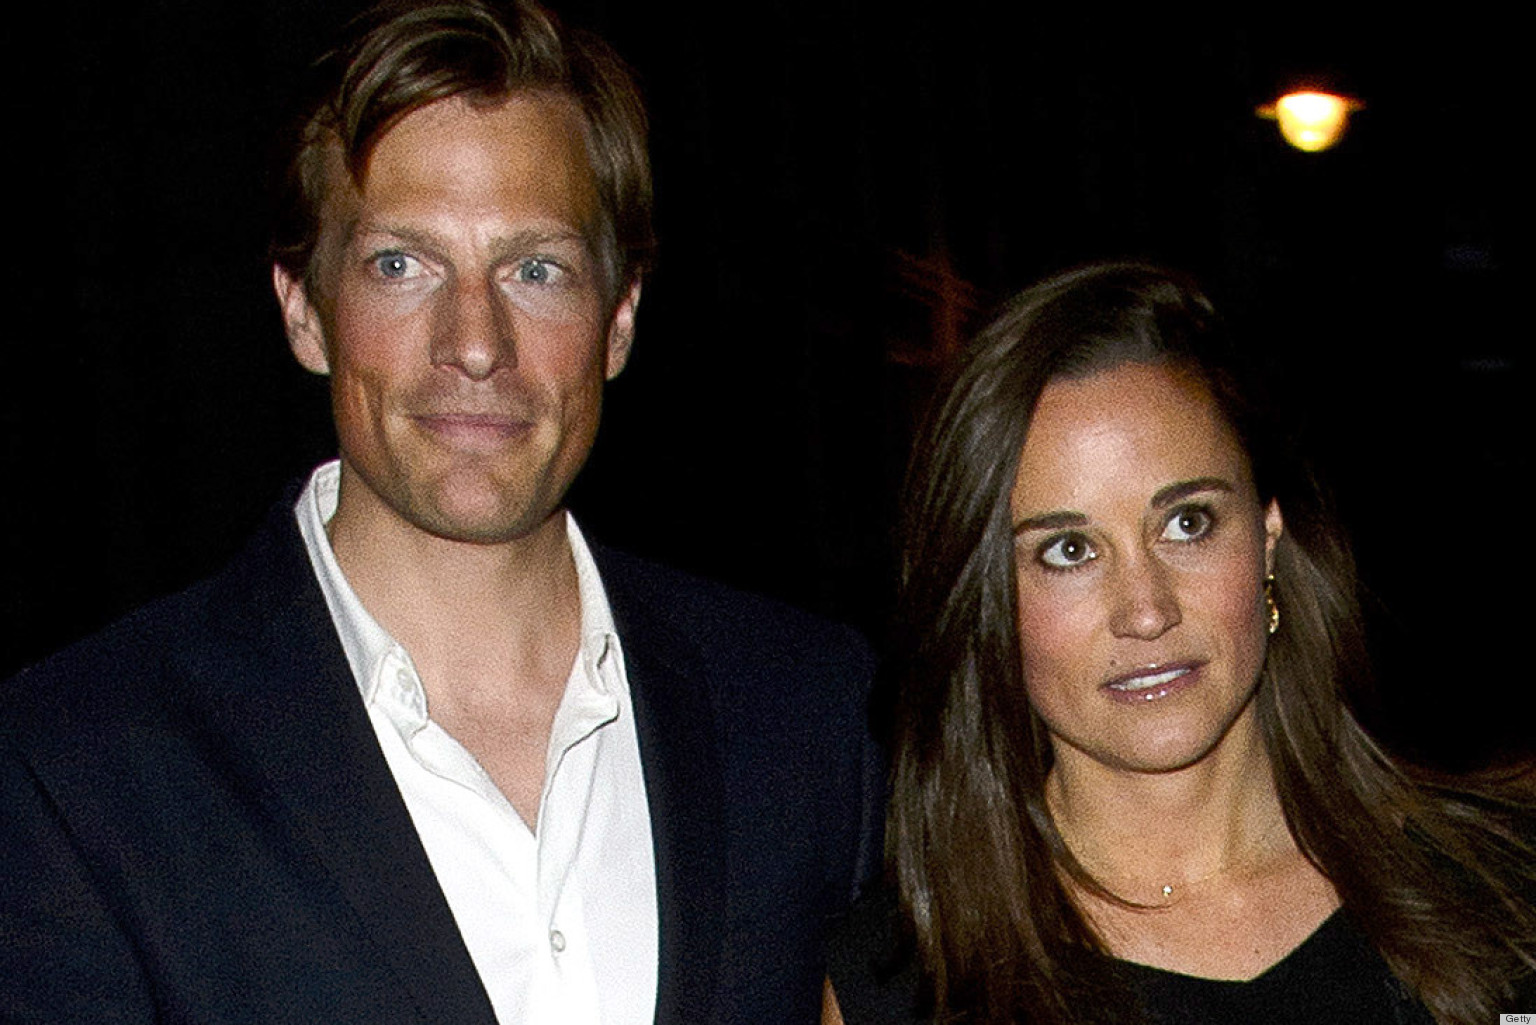 pippa middleton dating James matthews and pippa middleton have been married for 3 months they were dating for 10 months after getting together in sep 2015 after 10 months of engagement they married on 20th may 2017.